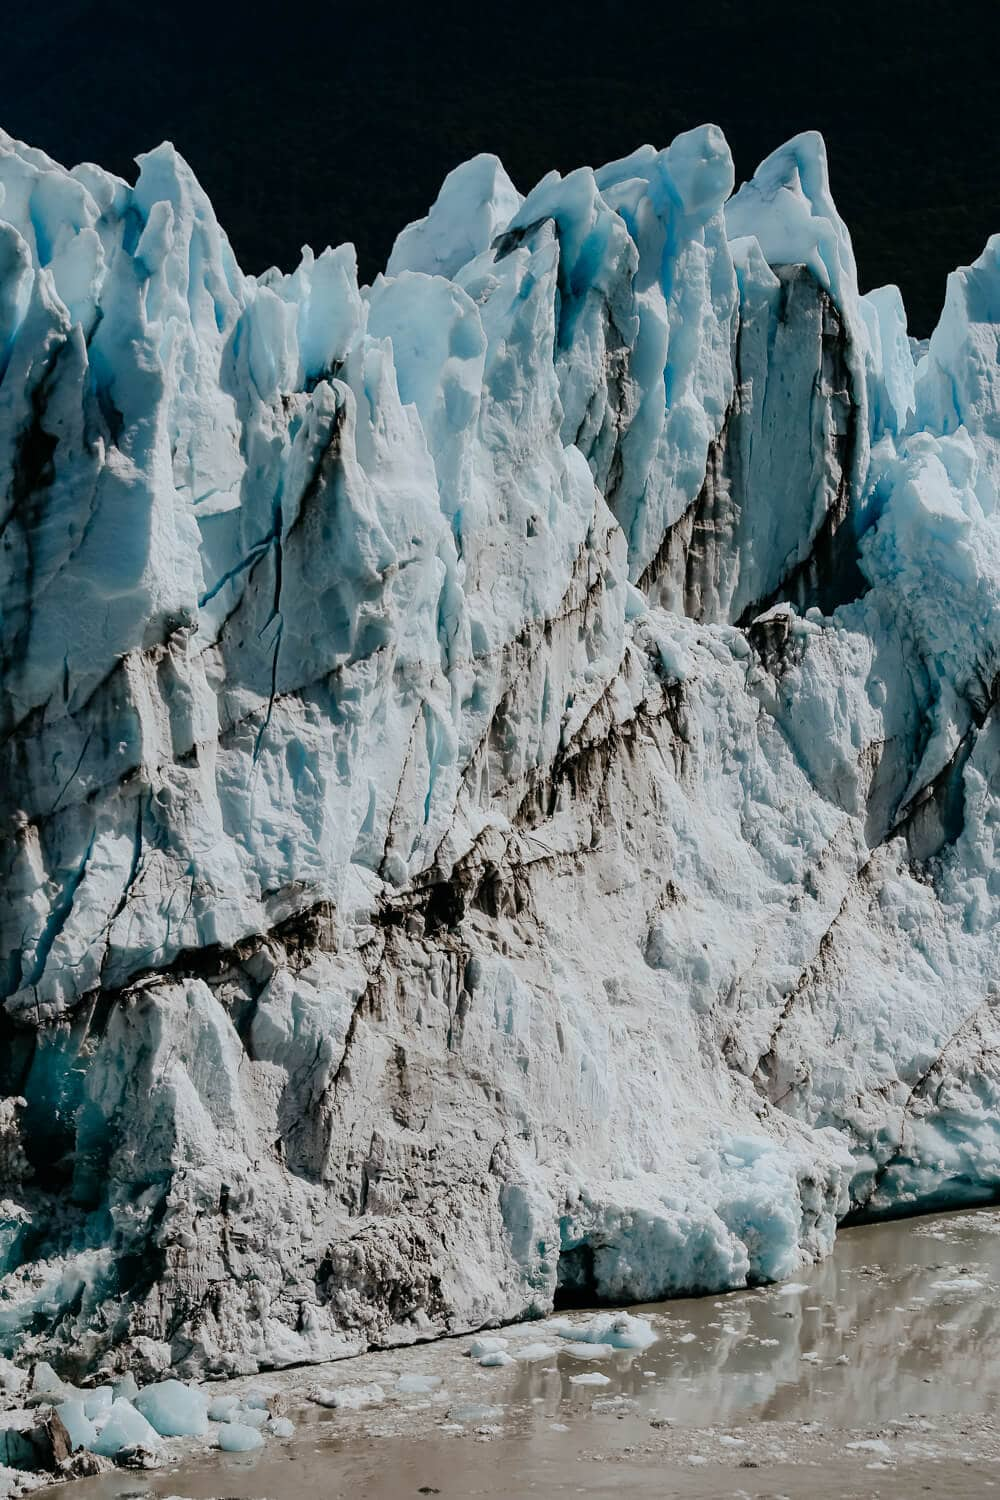 The large, steep blue ice wall in front of the Perito Moreno Glacier in Patagonia